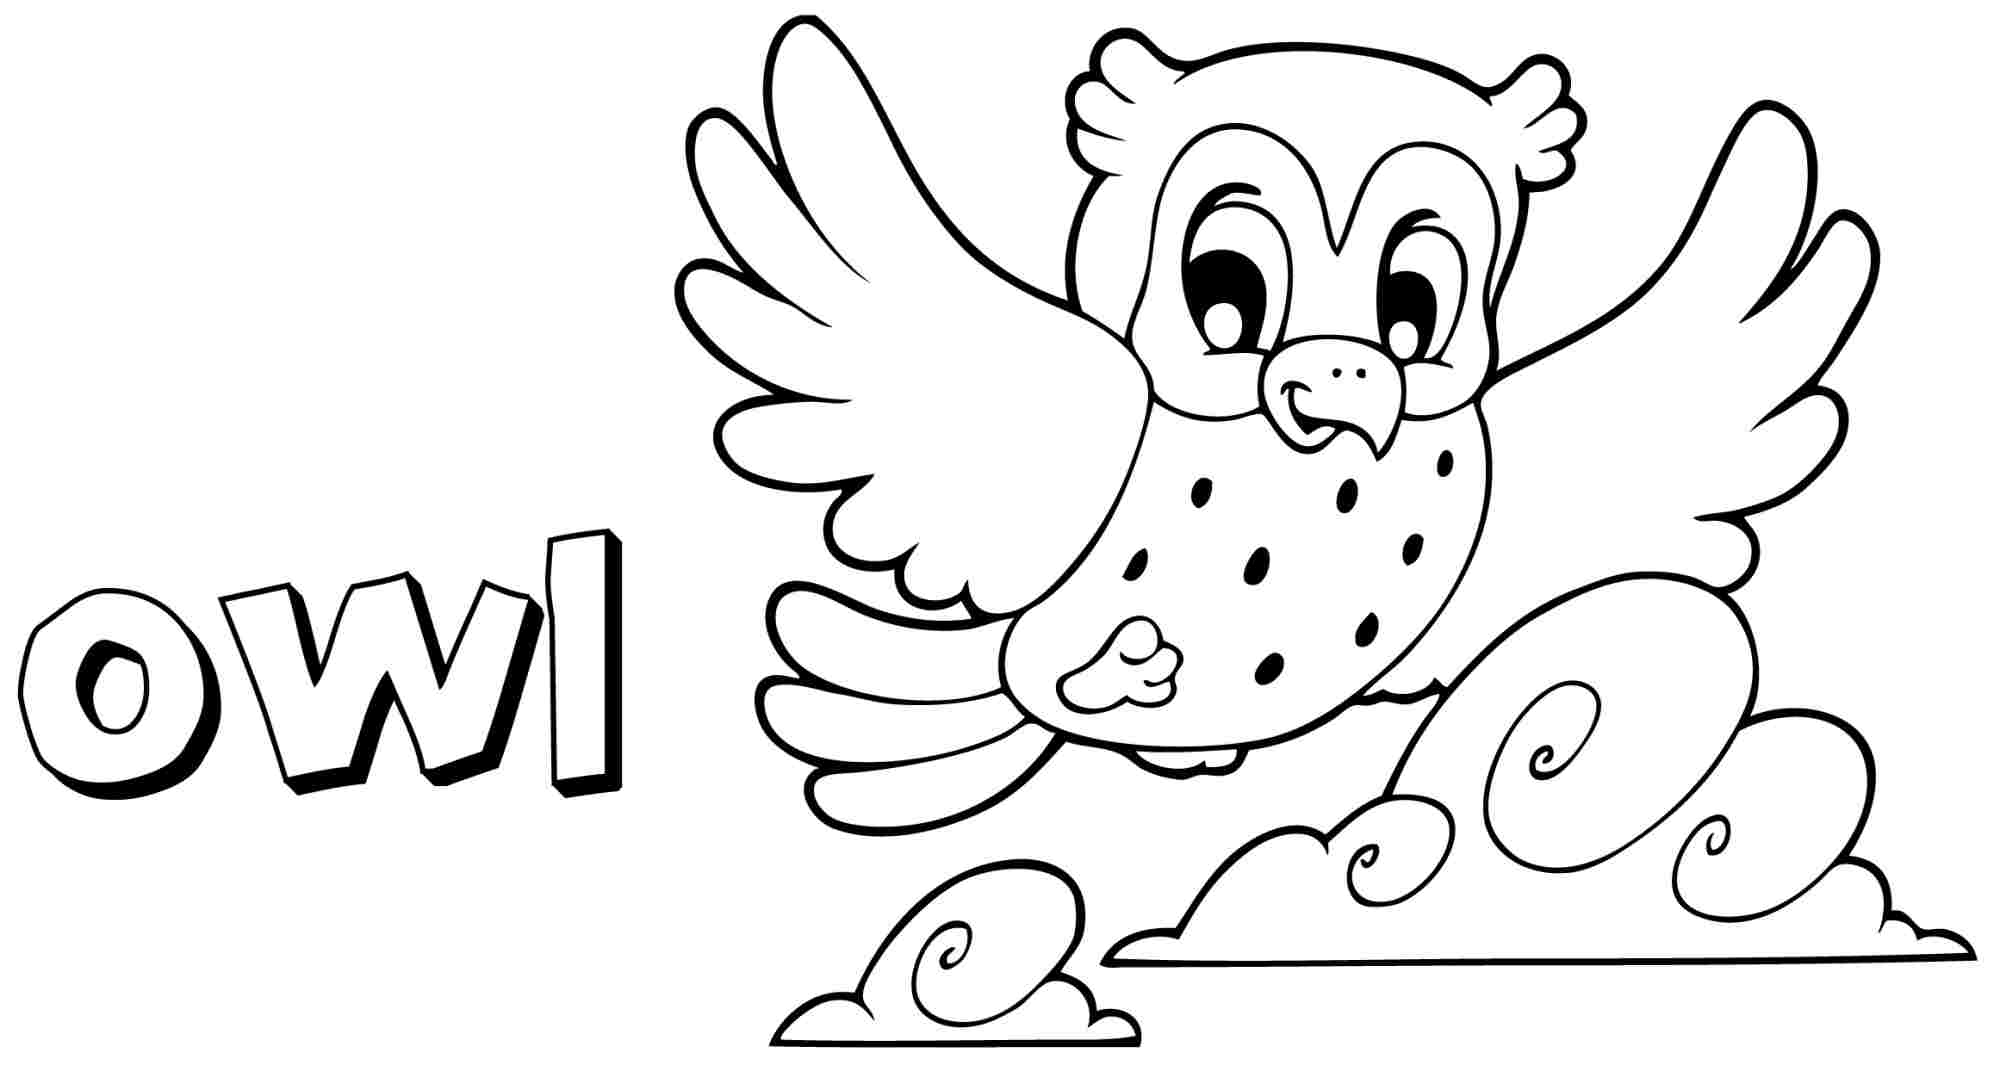 Free Owl Coloring Pages Image 21